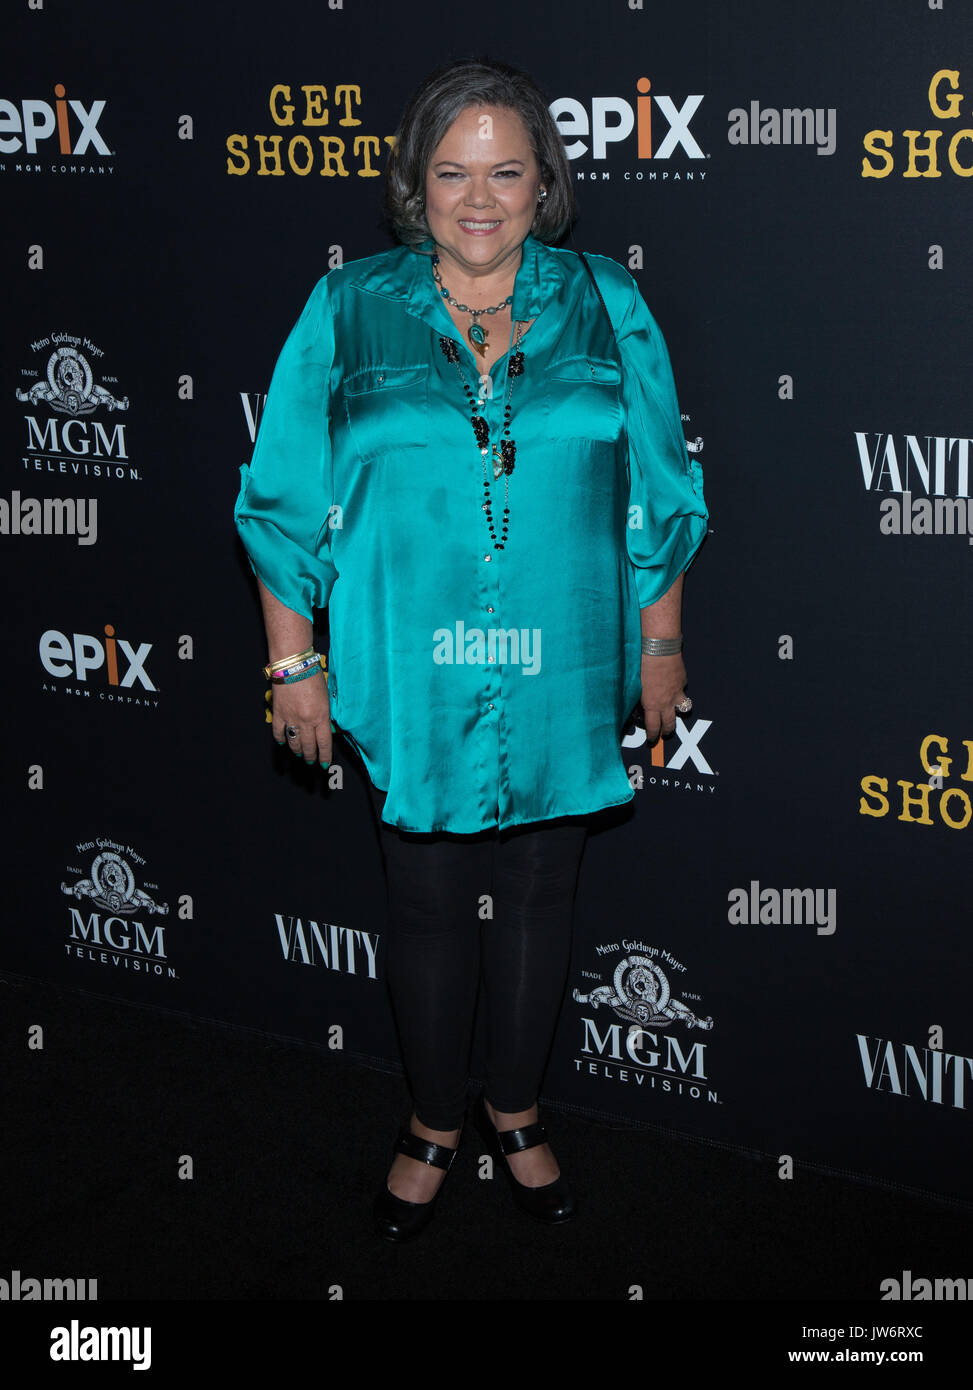 West Hollywood,USA. 10th Aug,2017. Lidia Porto attends red carpet premiere EPIX original series 'Get Shorty' Pacific Stock Photo